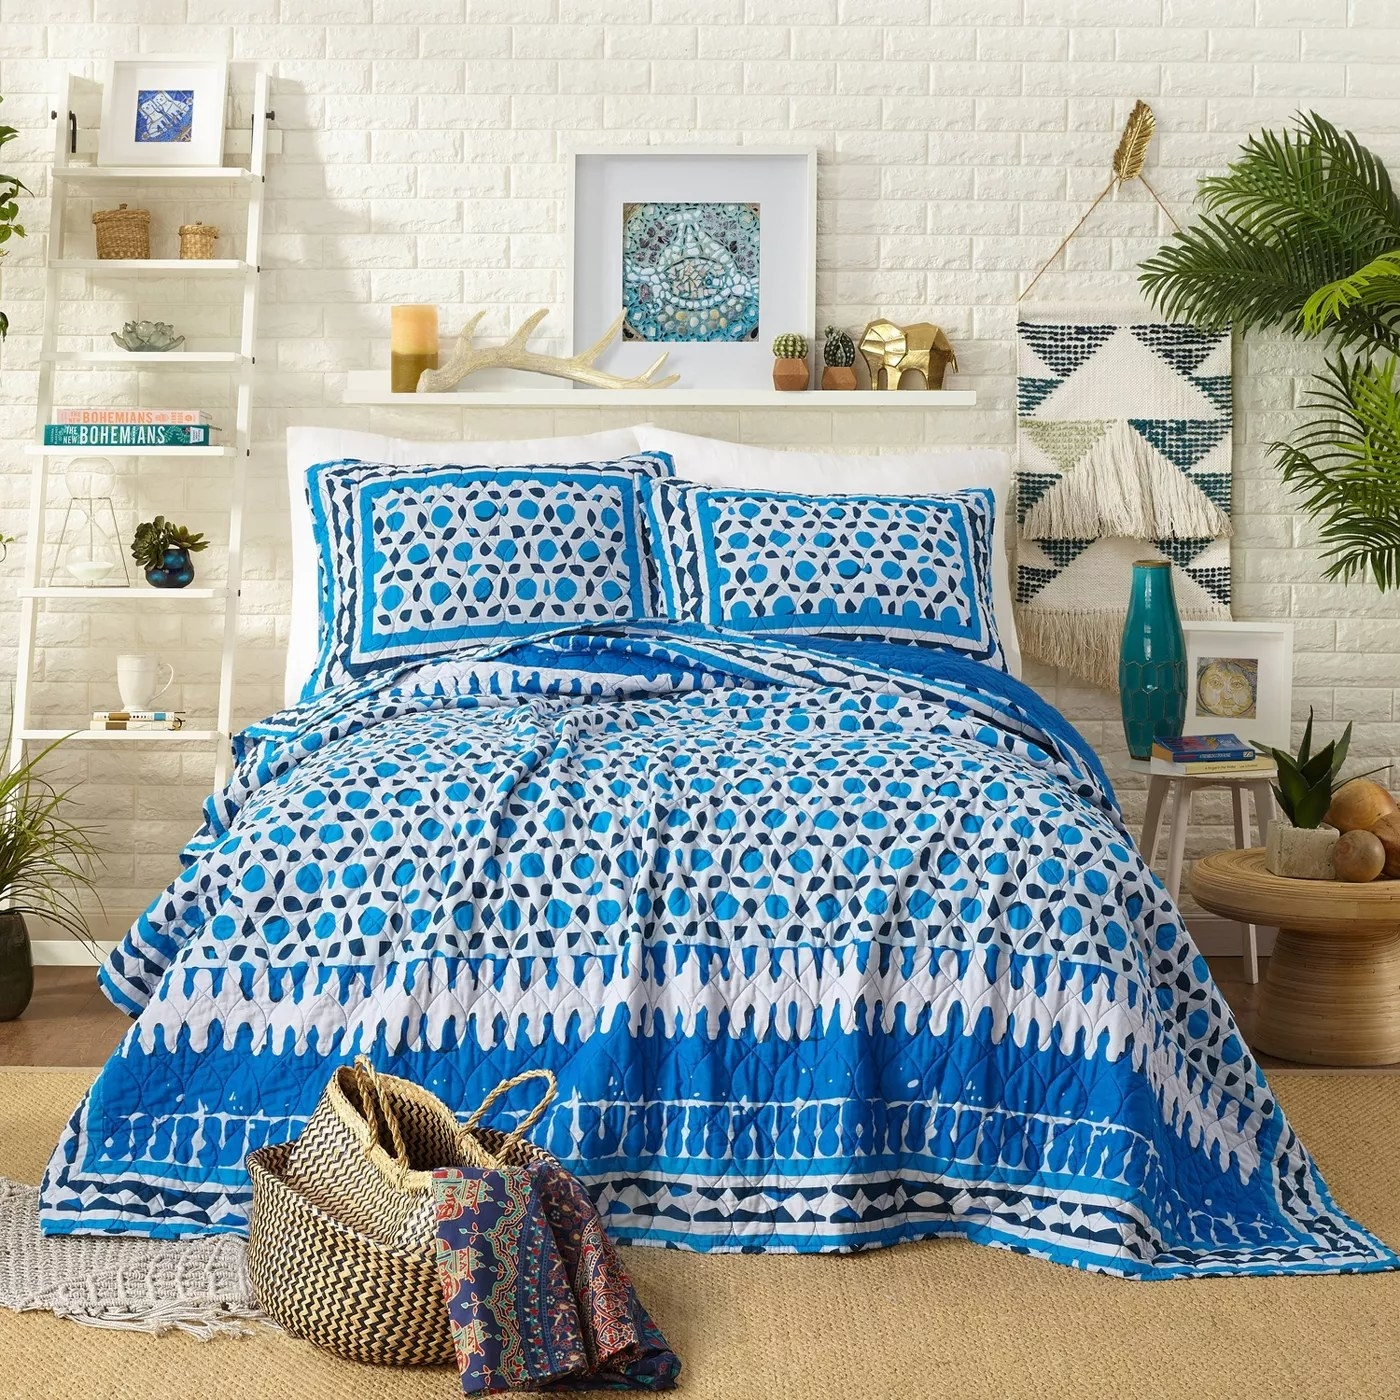 The blue, mosaic-inspired quilt and matching pair of shams